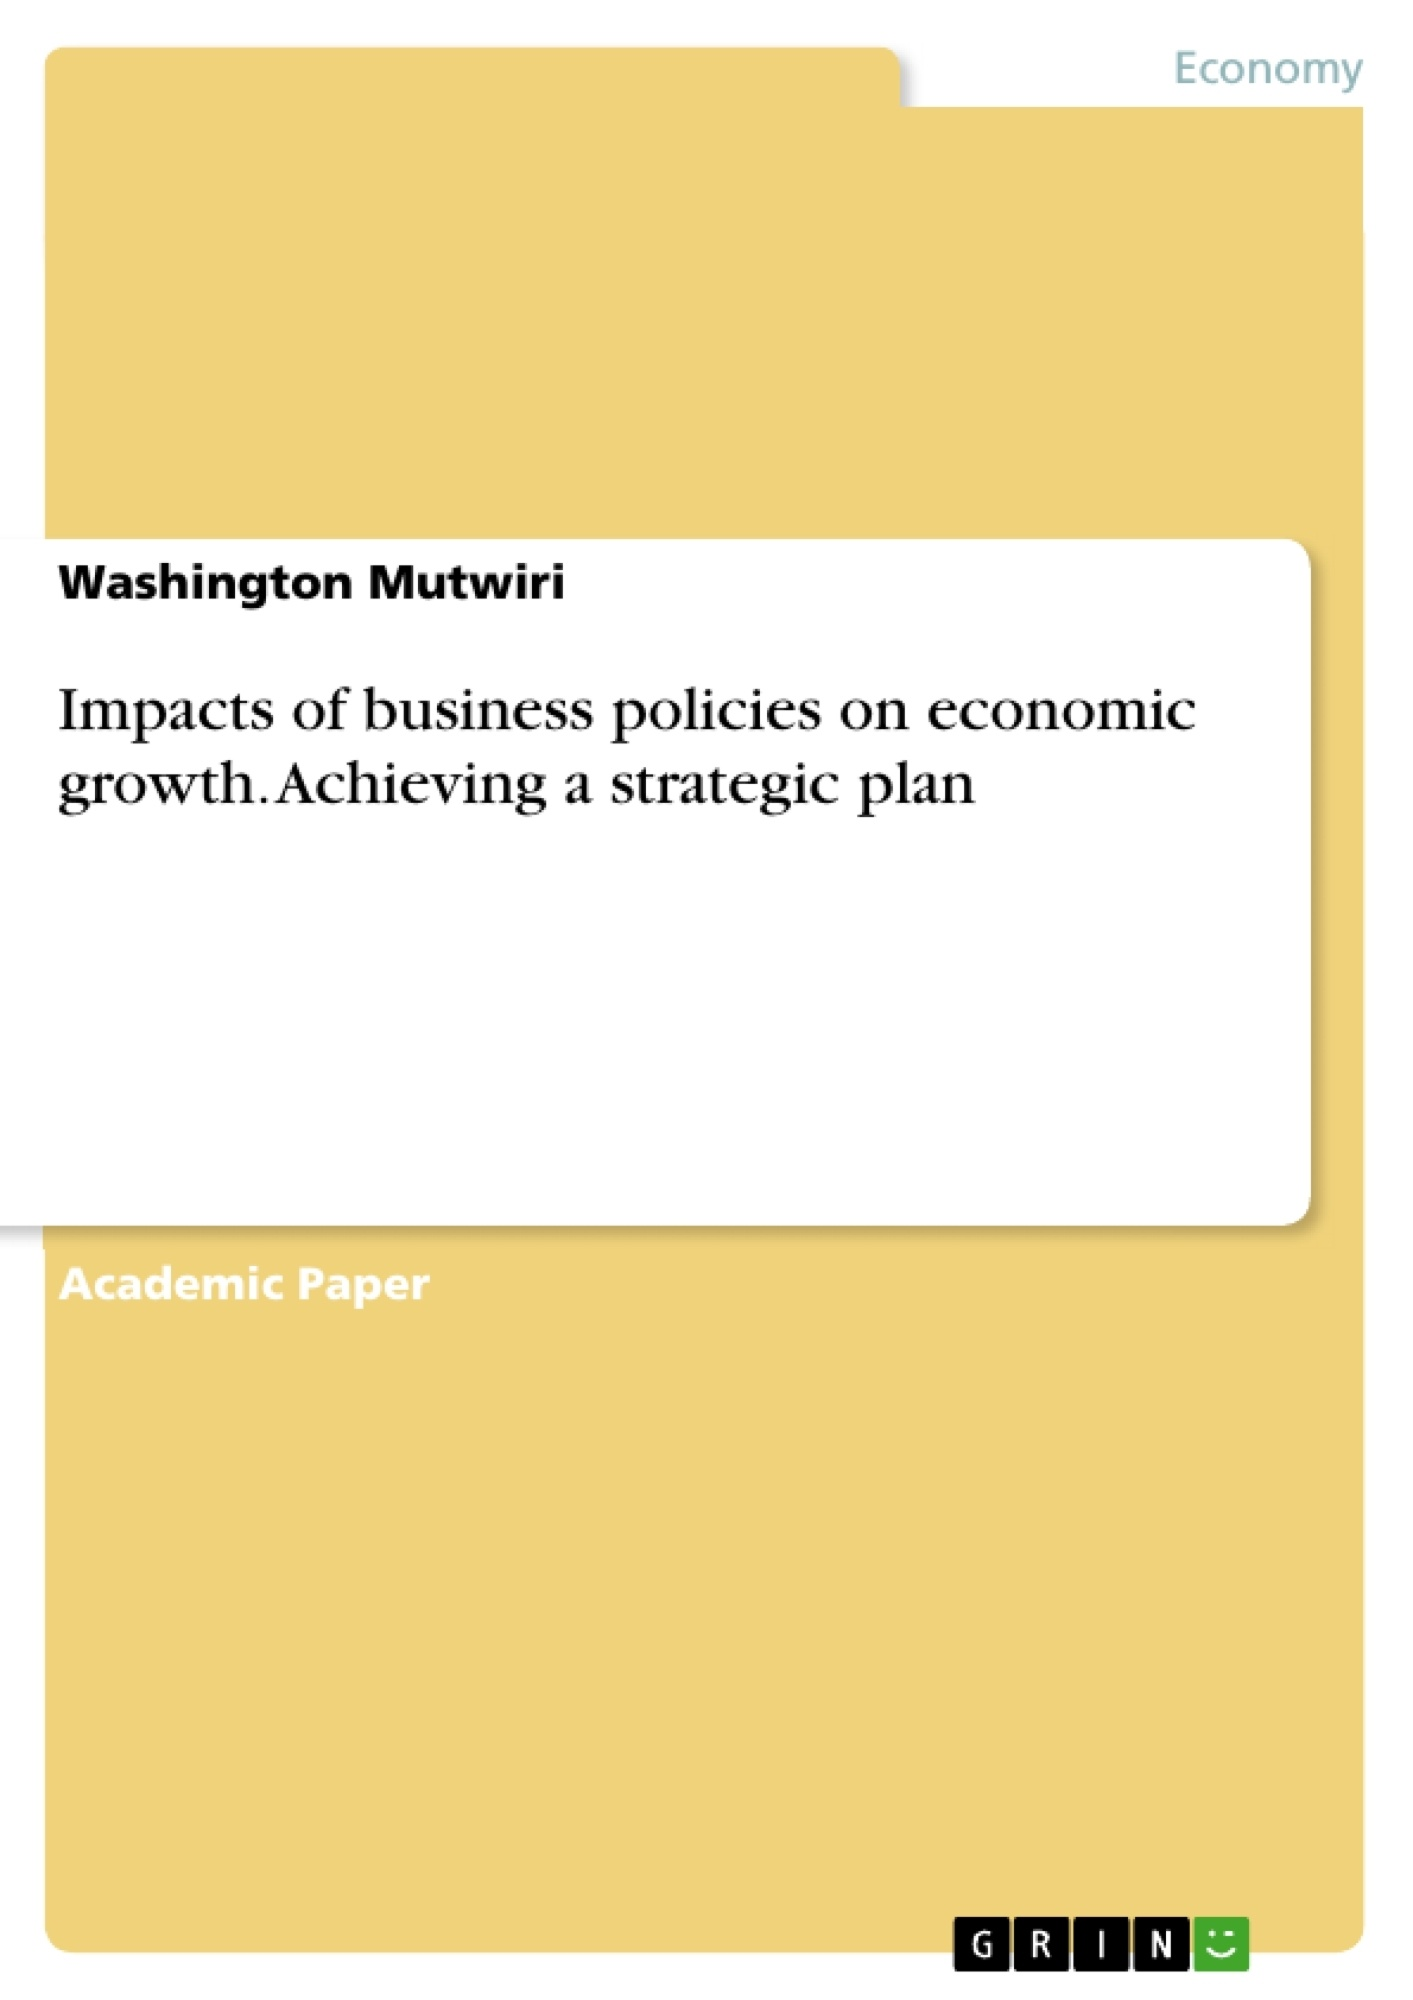 Title: Impacts of business policies on economic growth. Achieving a strategic plan